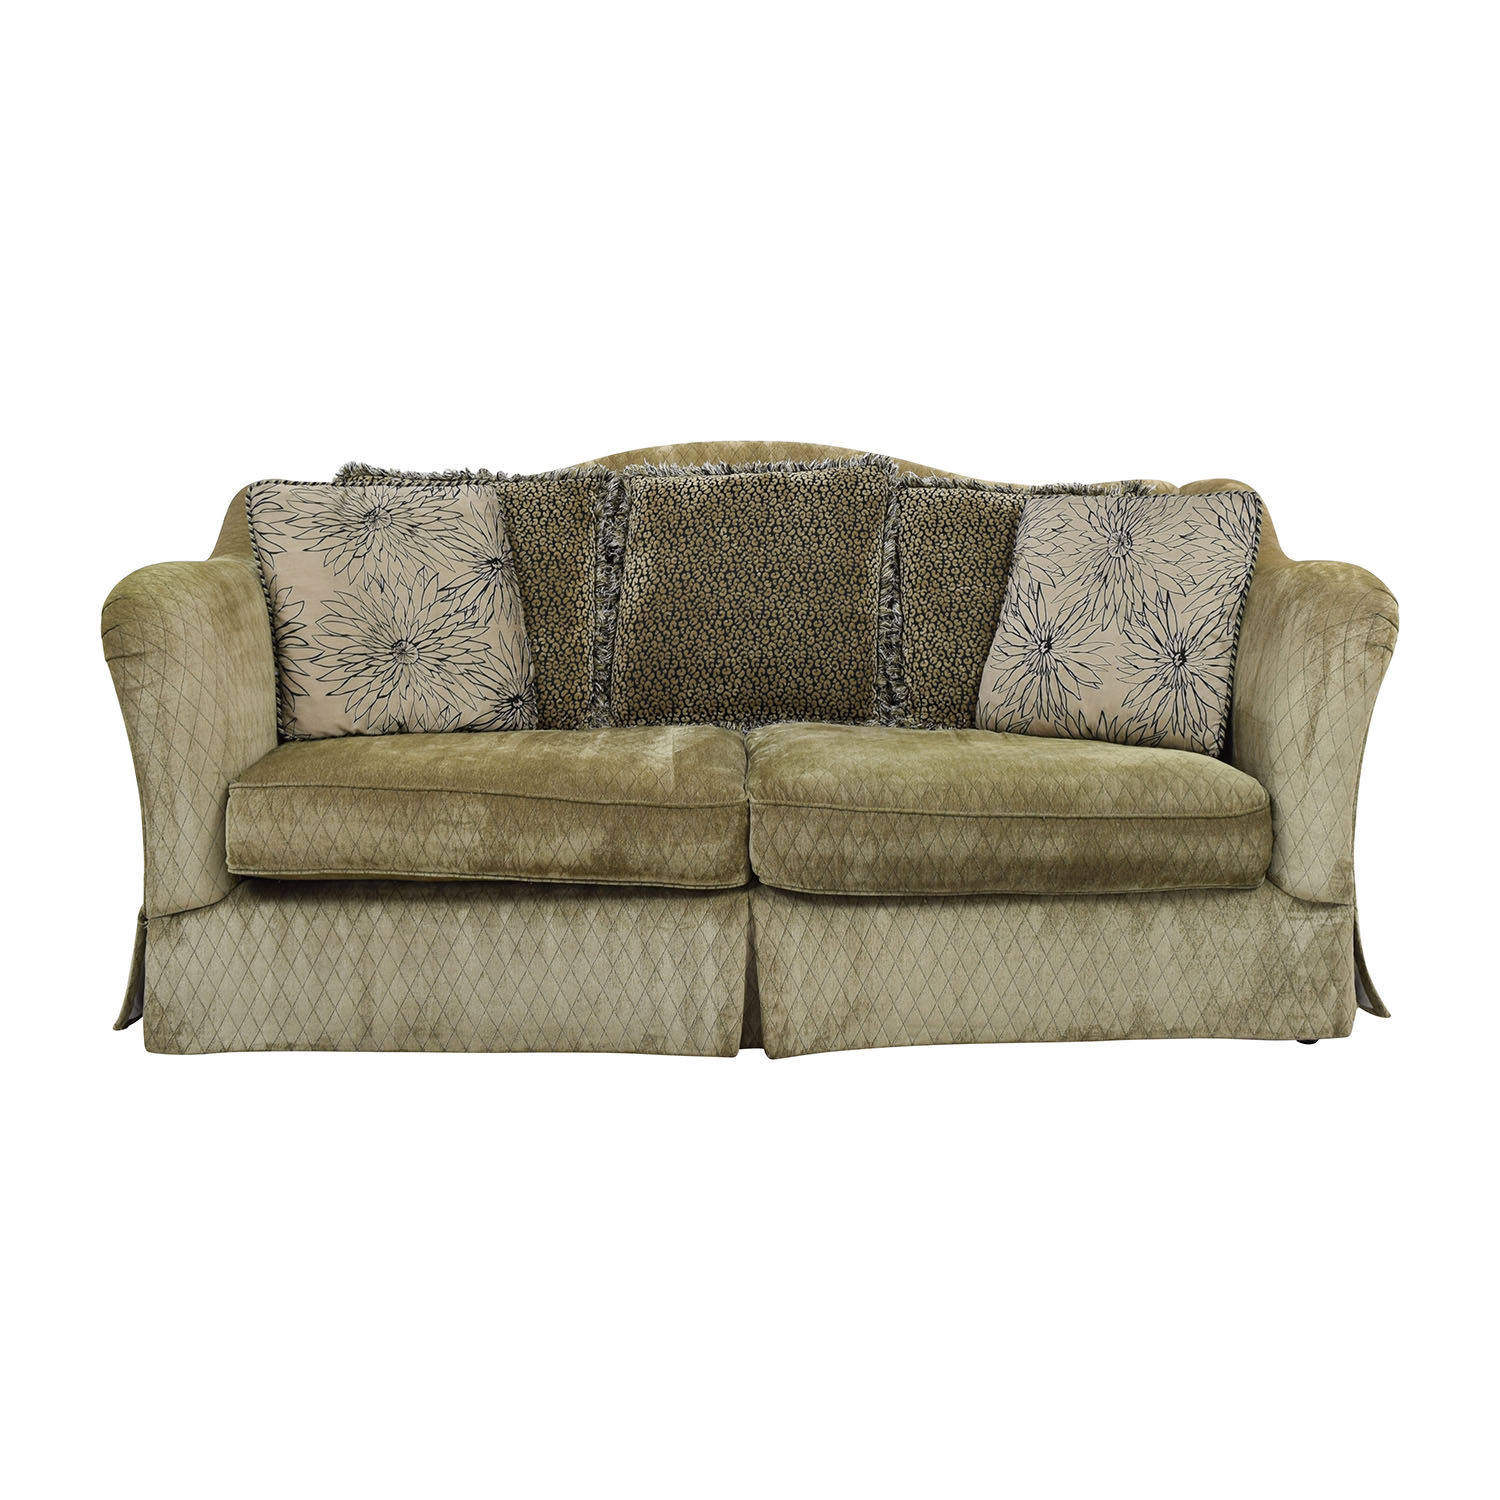 Raymour & Flanigan Green Quilted Two-Cushion Sofa / Classic Sofas